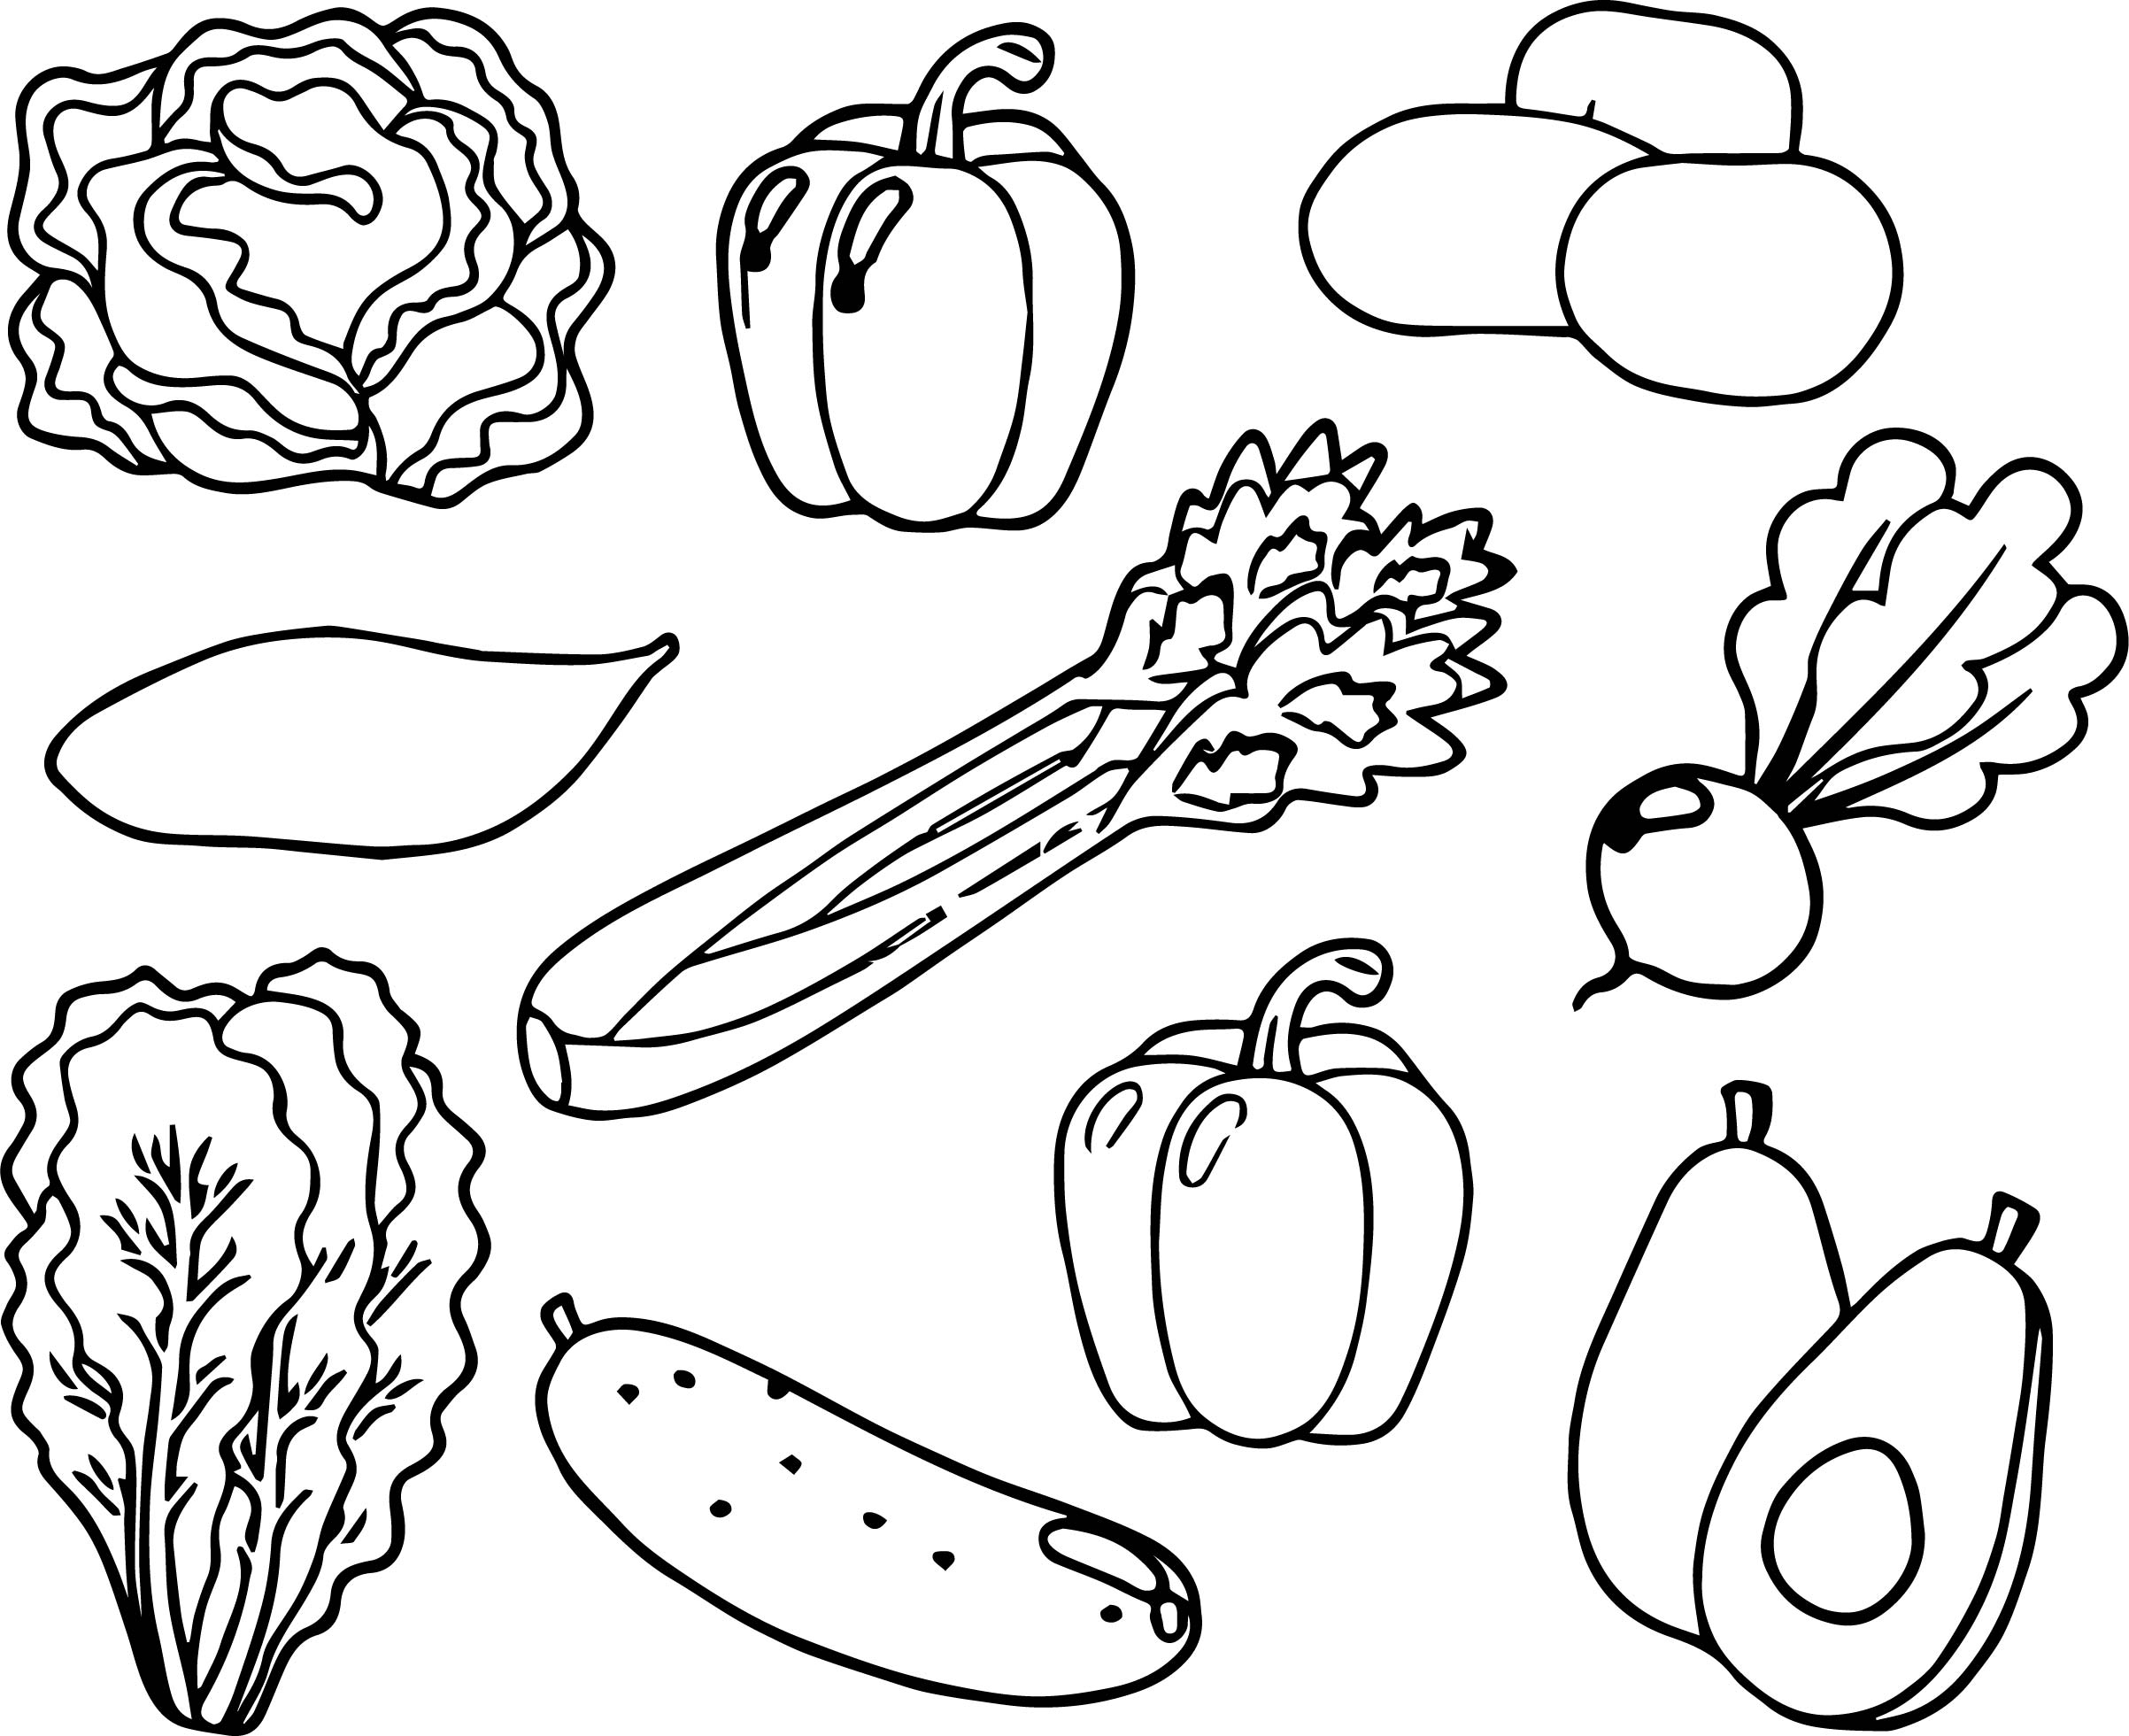 All Vegetable Coloring Page